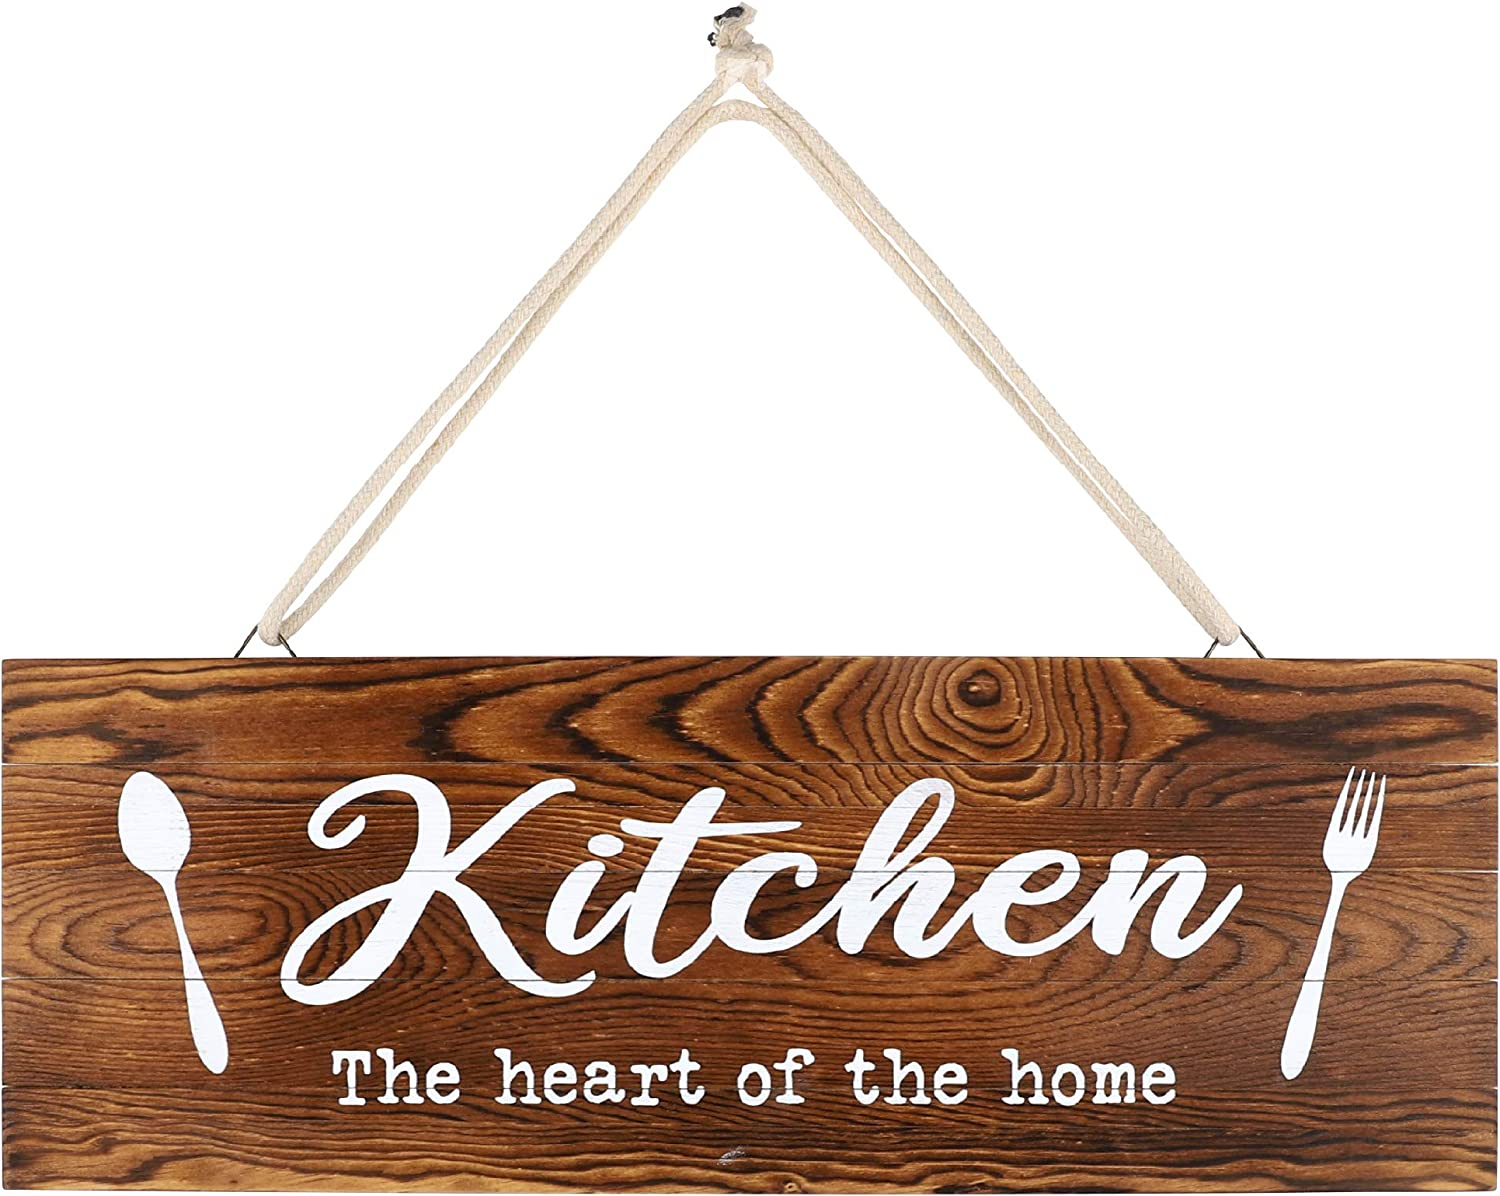 "whoaon Rustic Wood Home Sign, Kitchen. Real Pallet Wood Sign for Rustic Home Decor, Farmhouse Home Wall Decor with Kitchen Sign. 6"" x17"""